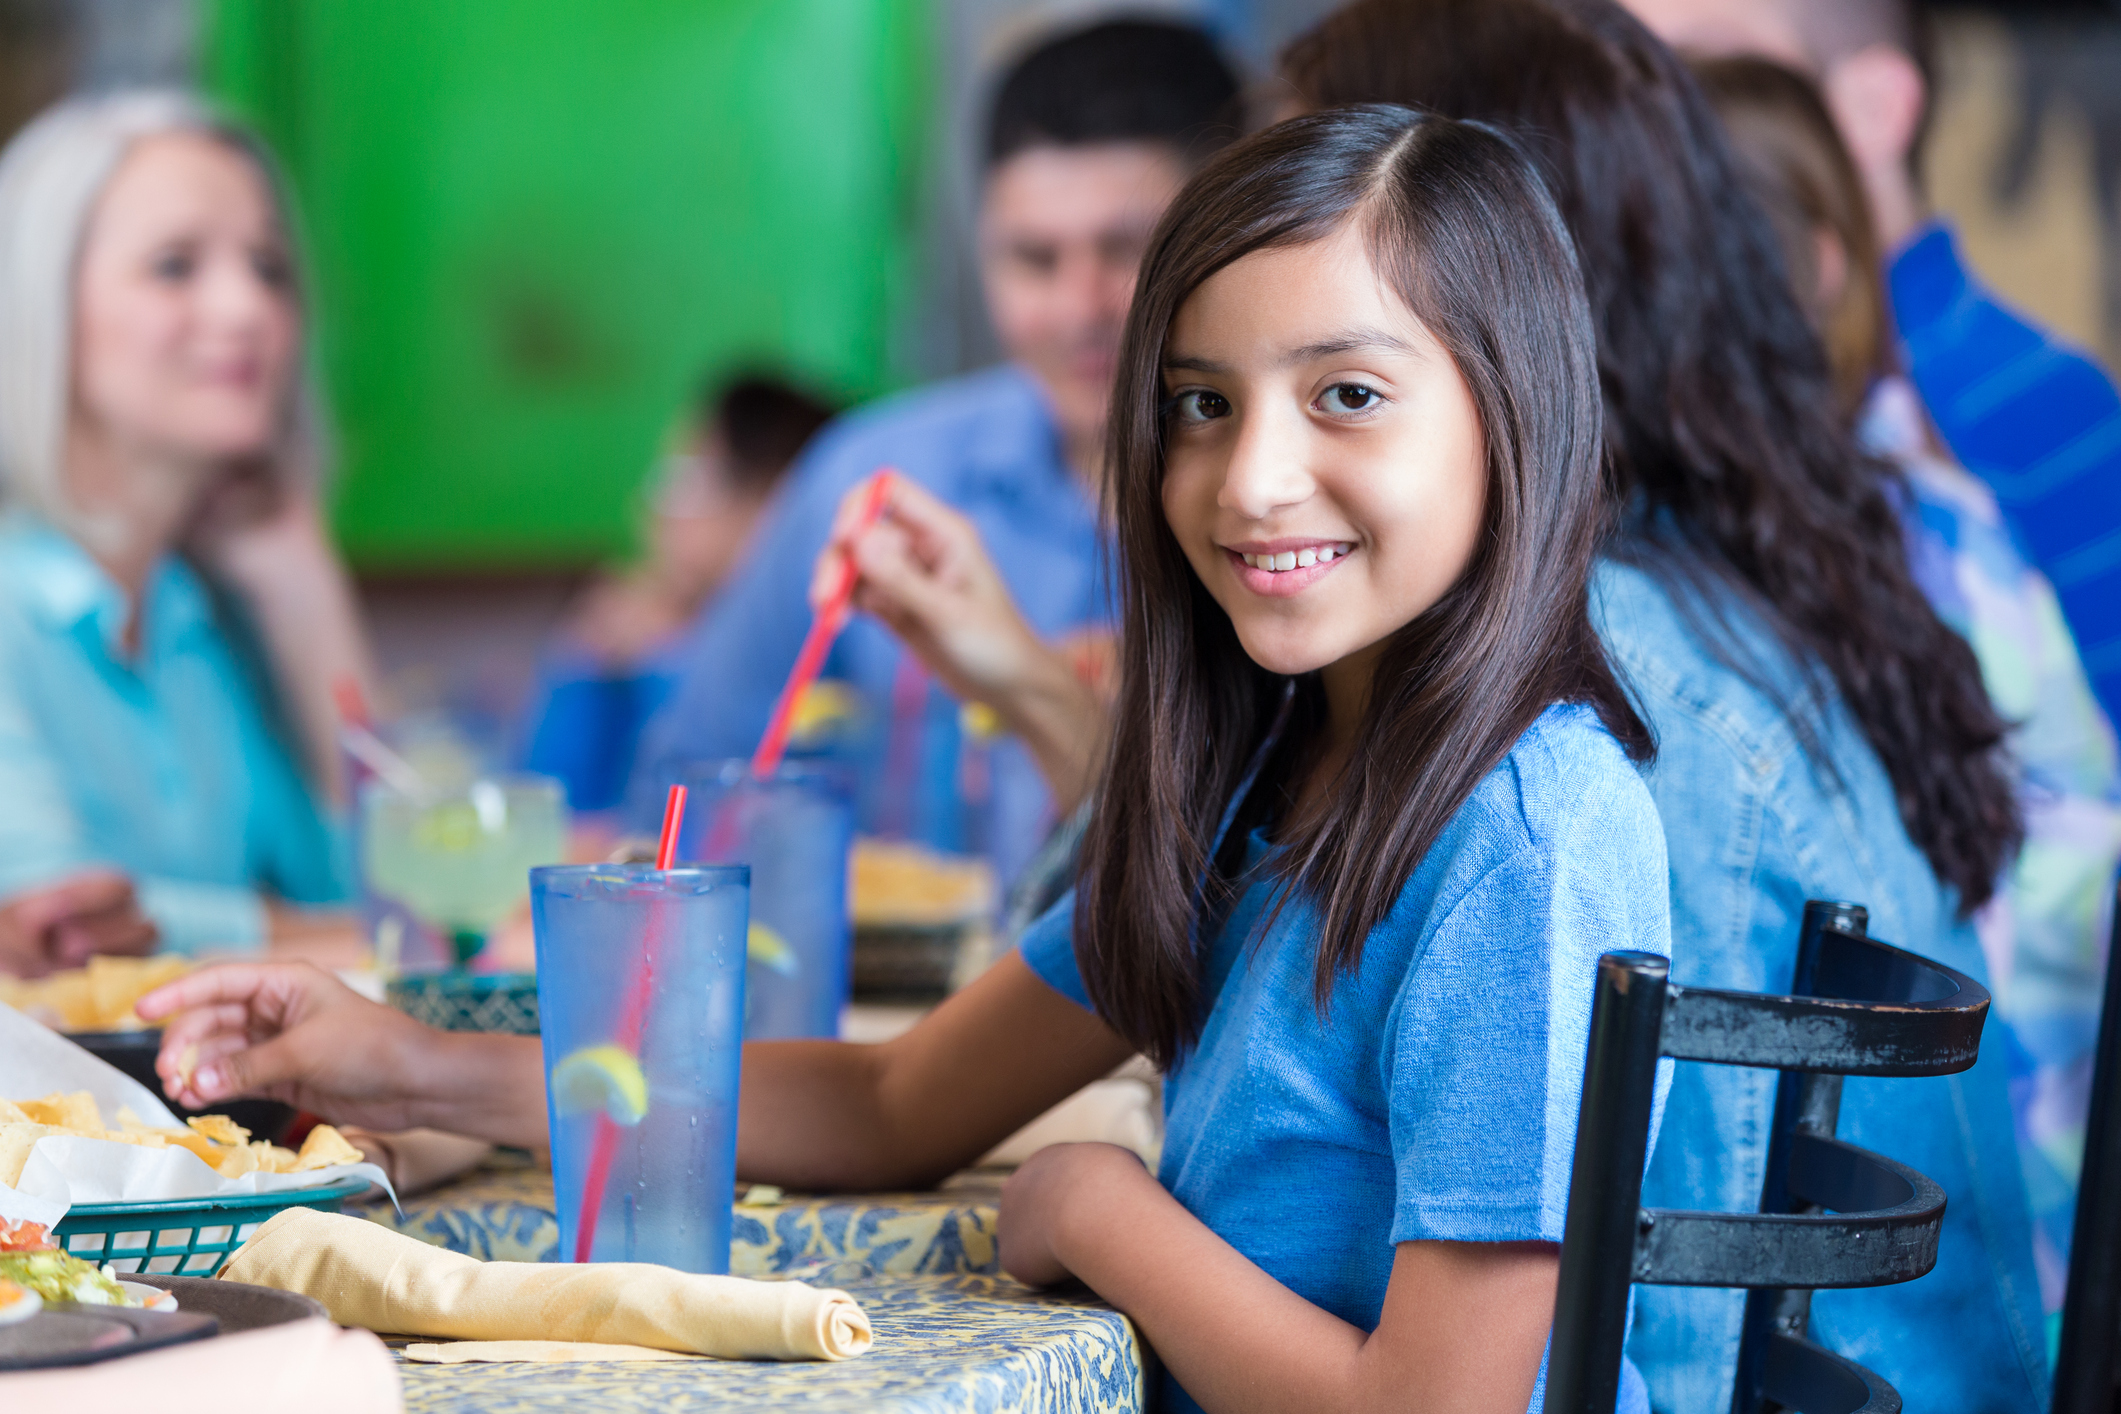 Healthy Drinks Should Be the Only Option in Kids' Meals